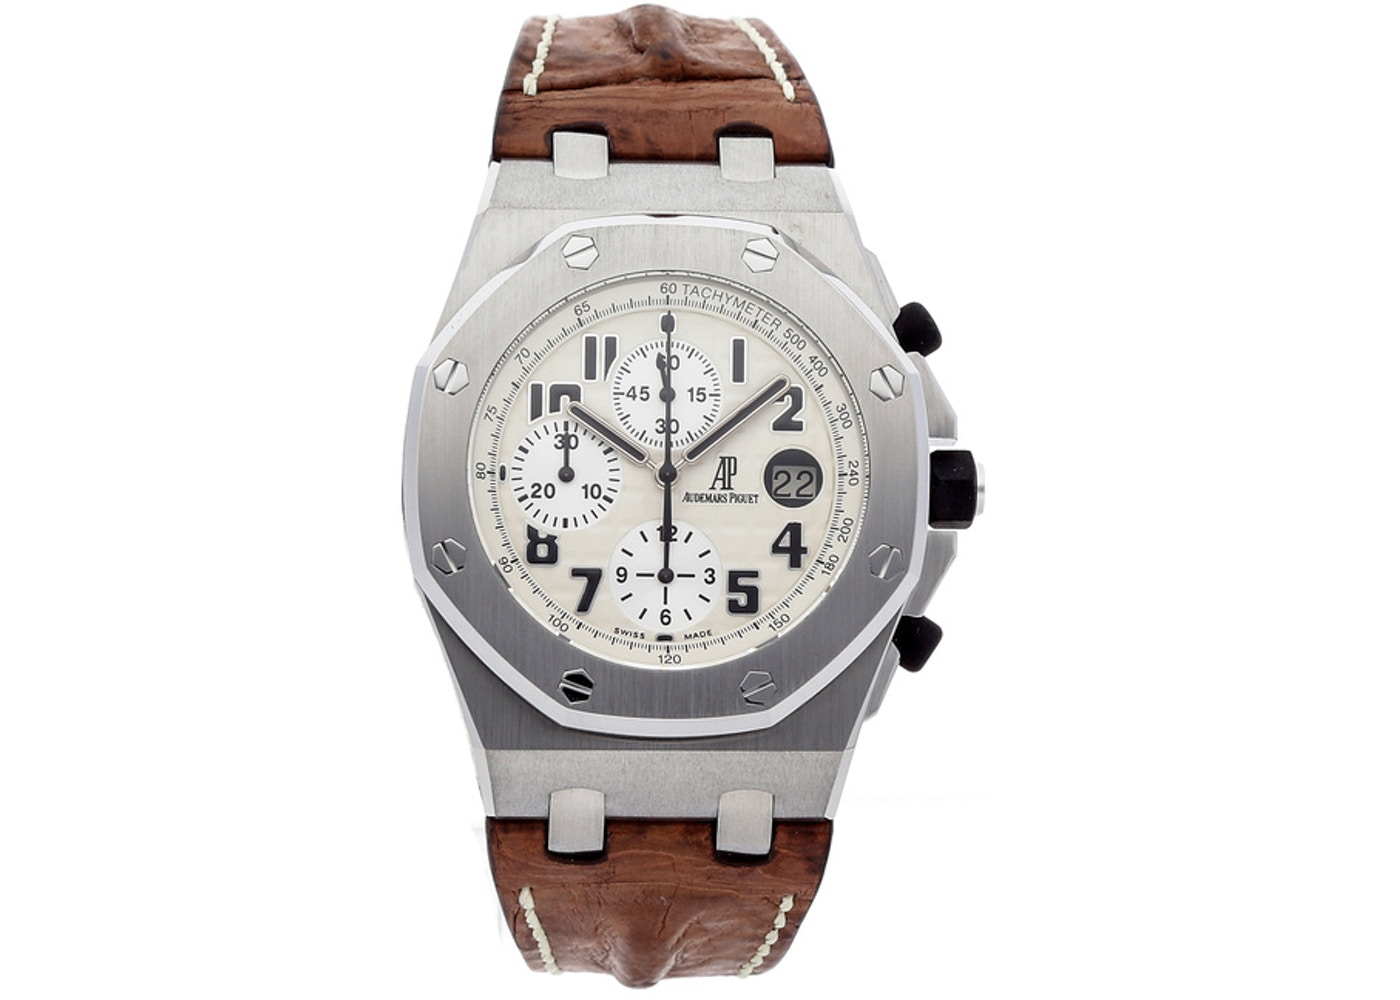 Audemars Piguet Royal Oak Offshore Chronograph Safari 26020st Oo D091cr 01 A